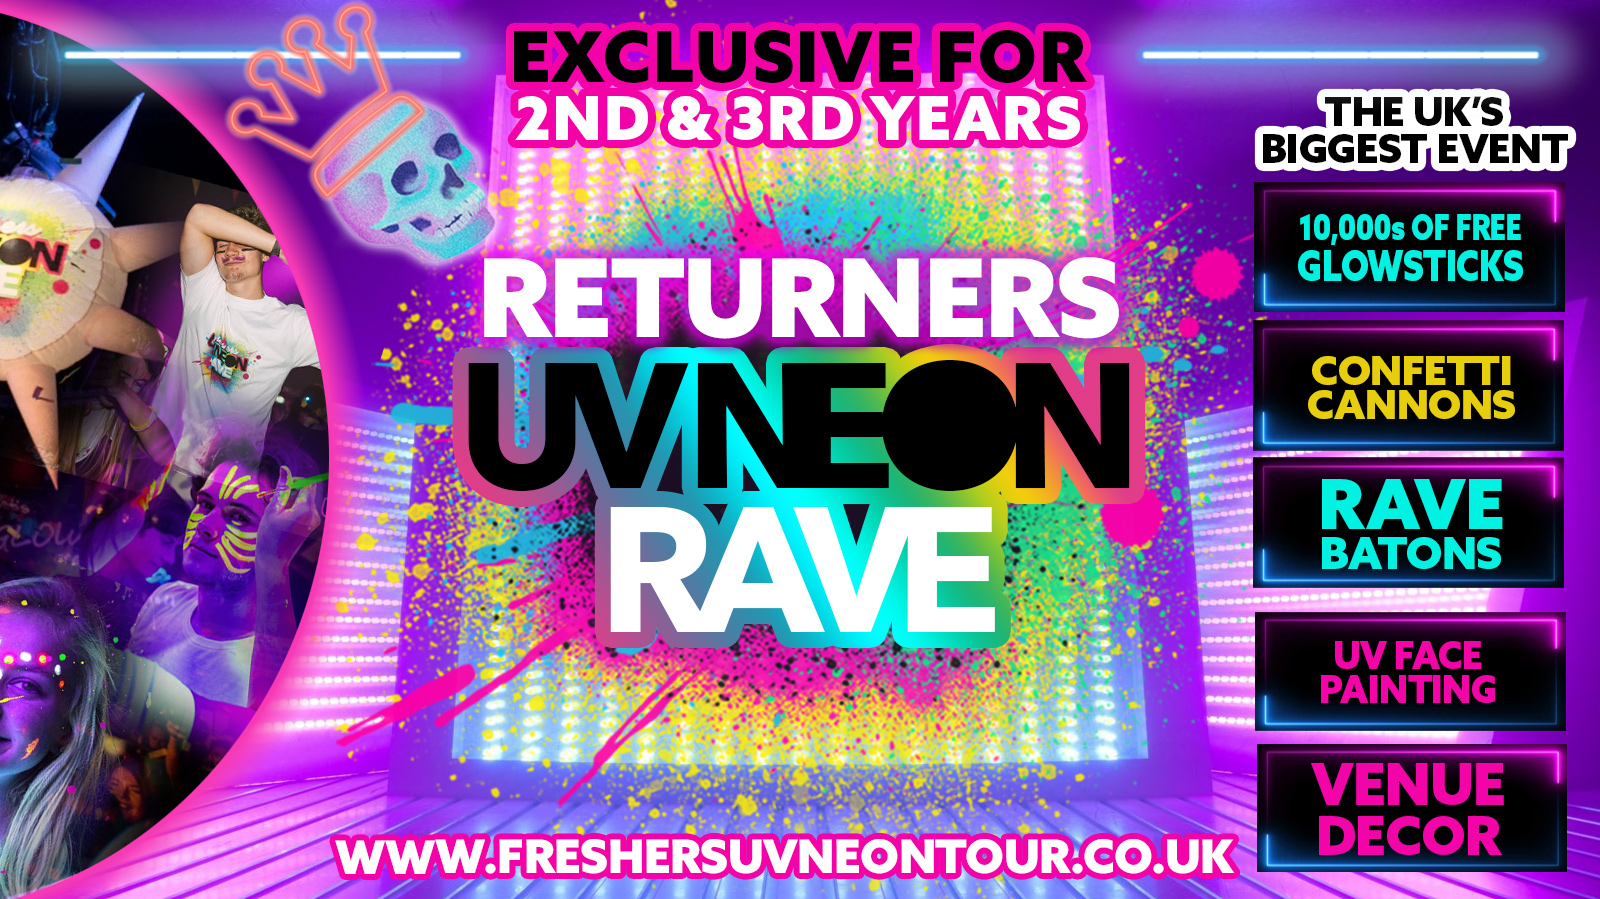 Leicester Returners UV Neon Rave   Exclusive for 2nd & 3rd Years